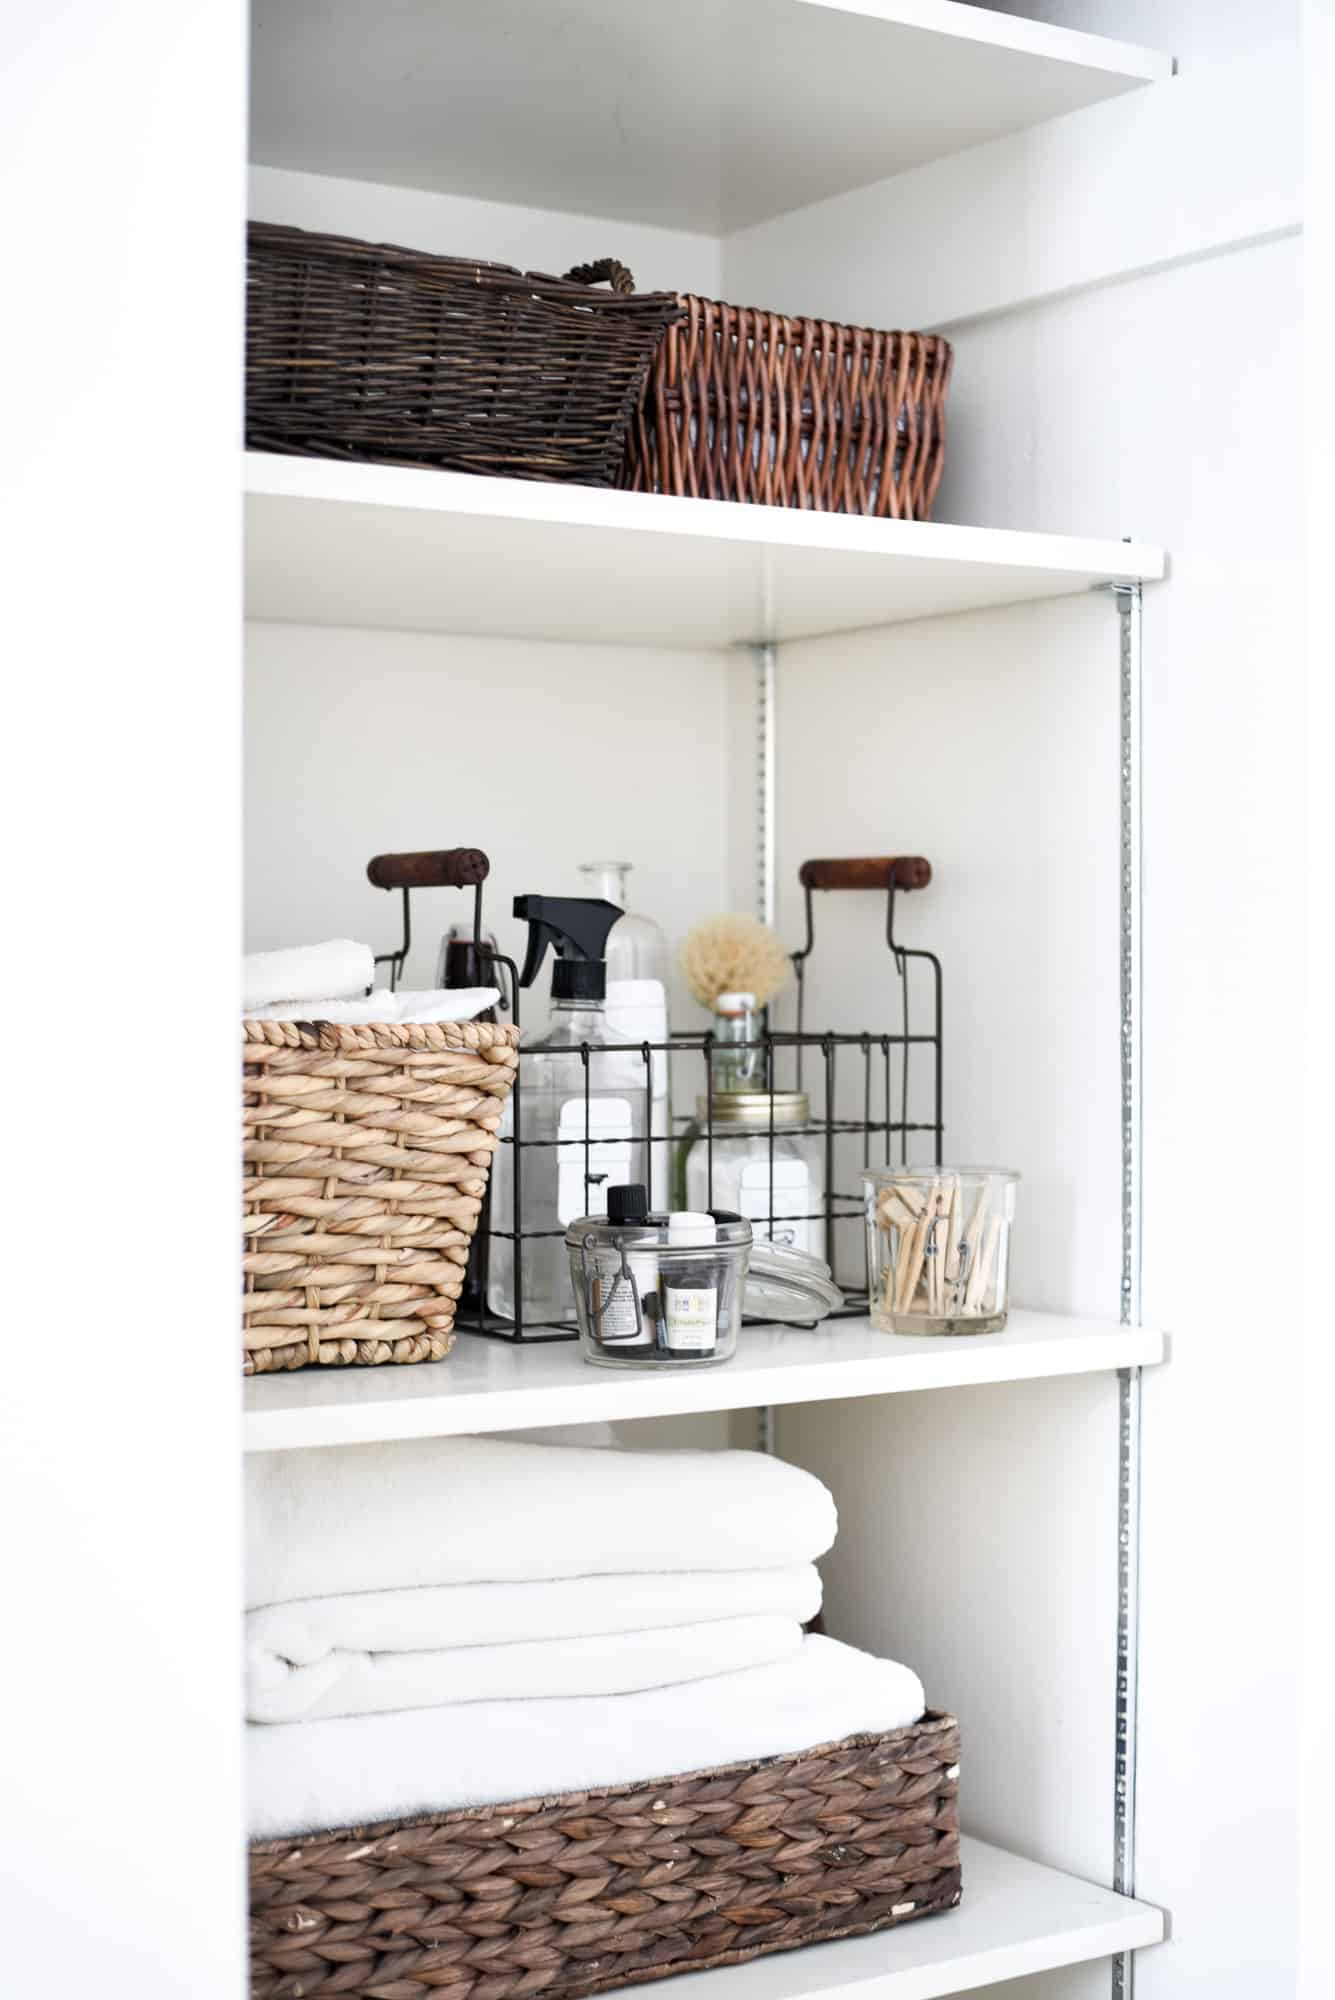 use baskets for closet organization